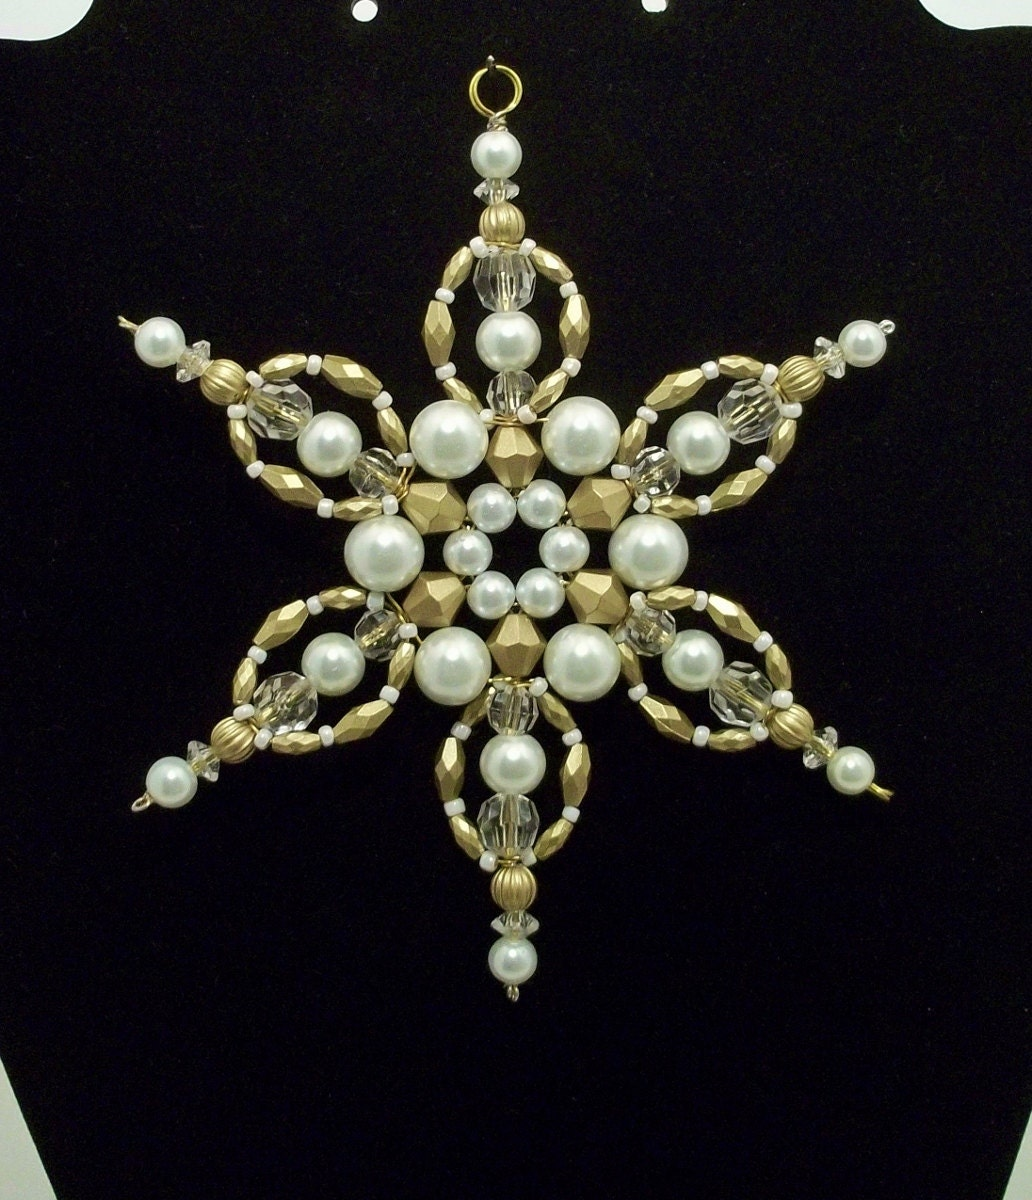 Snowflake Ornament White Pearl And Antique Gold Limited